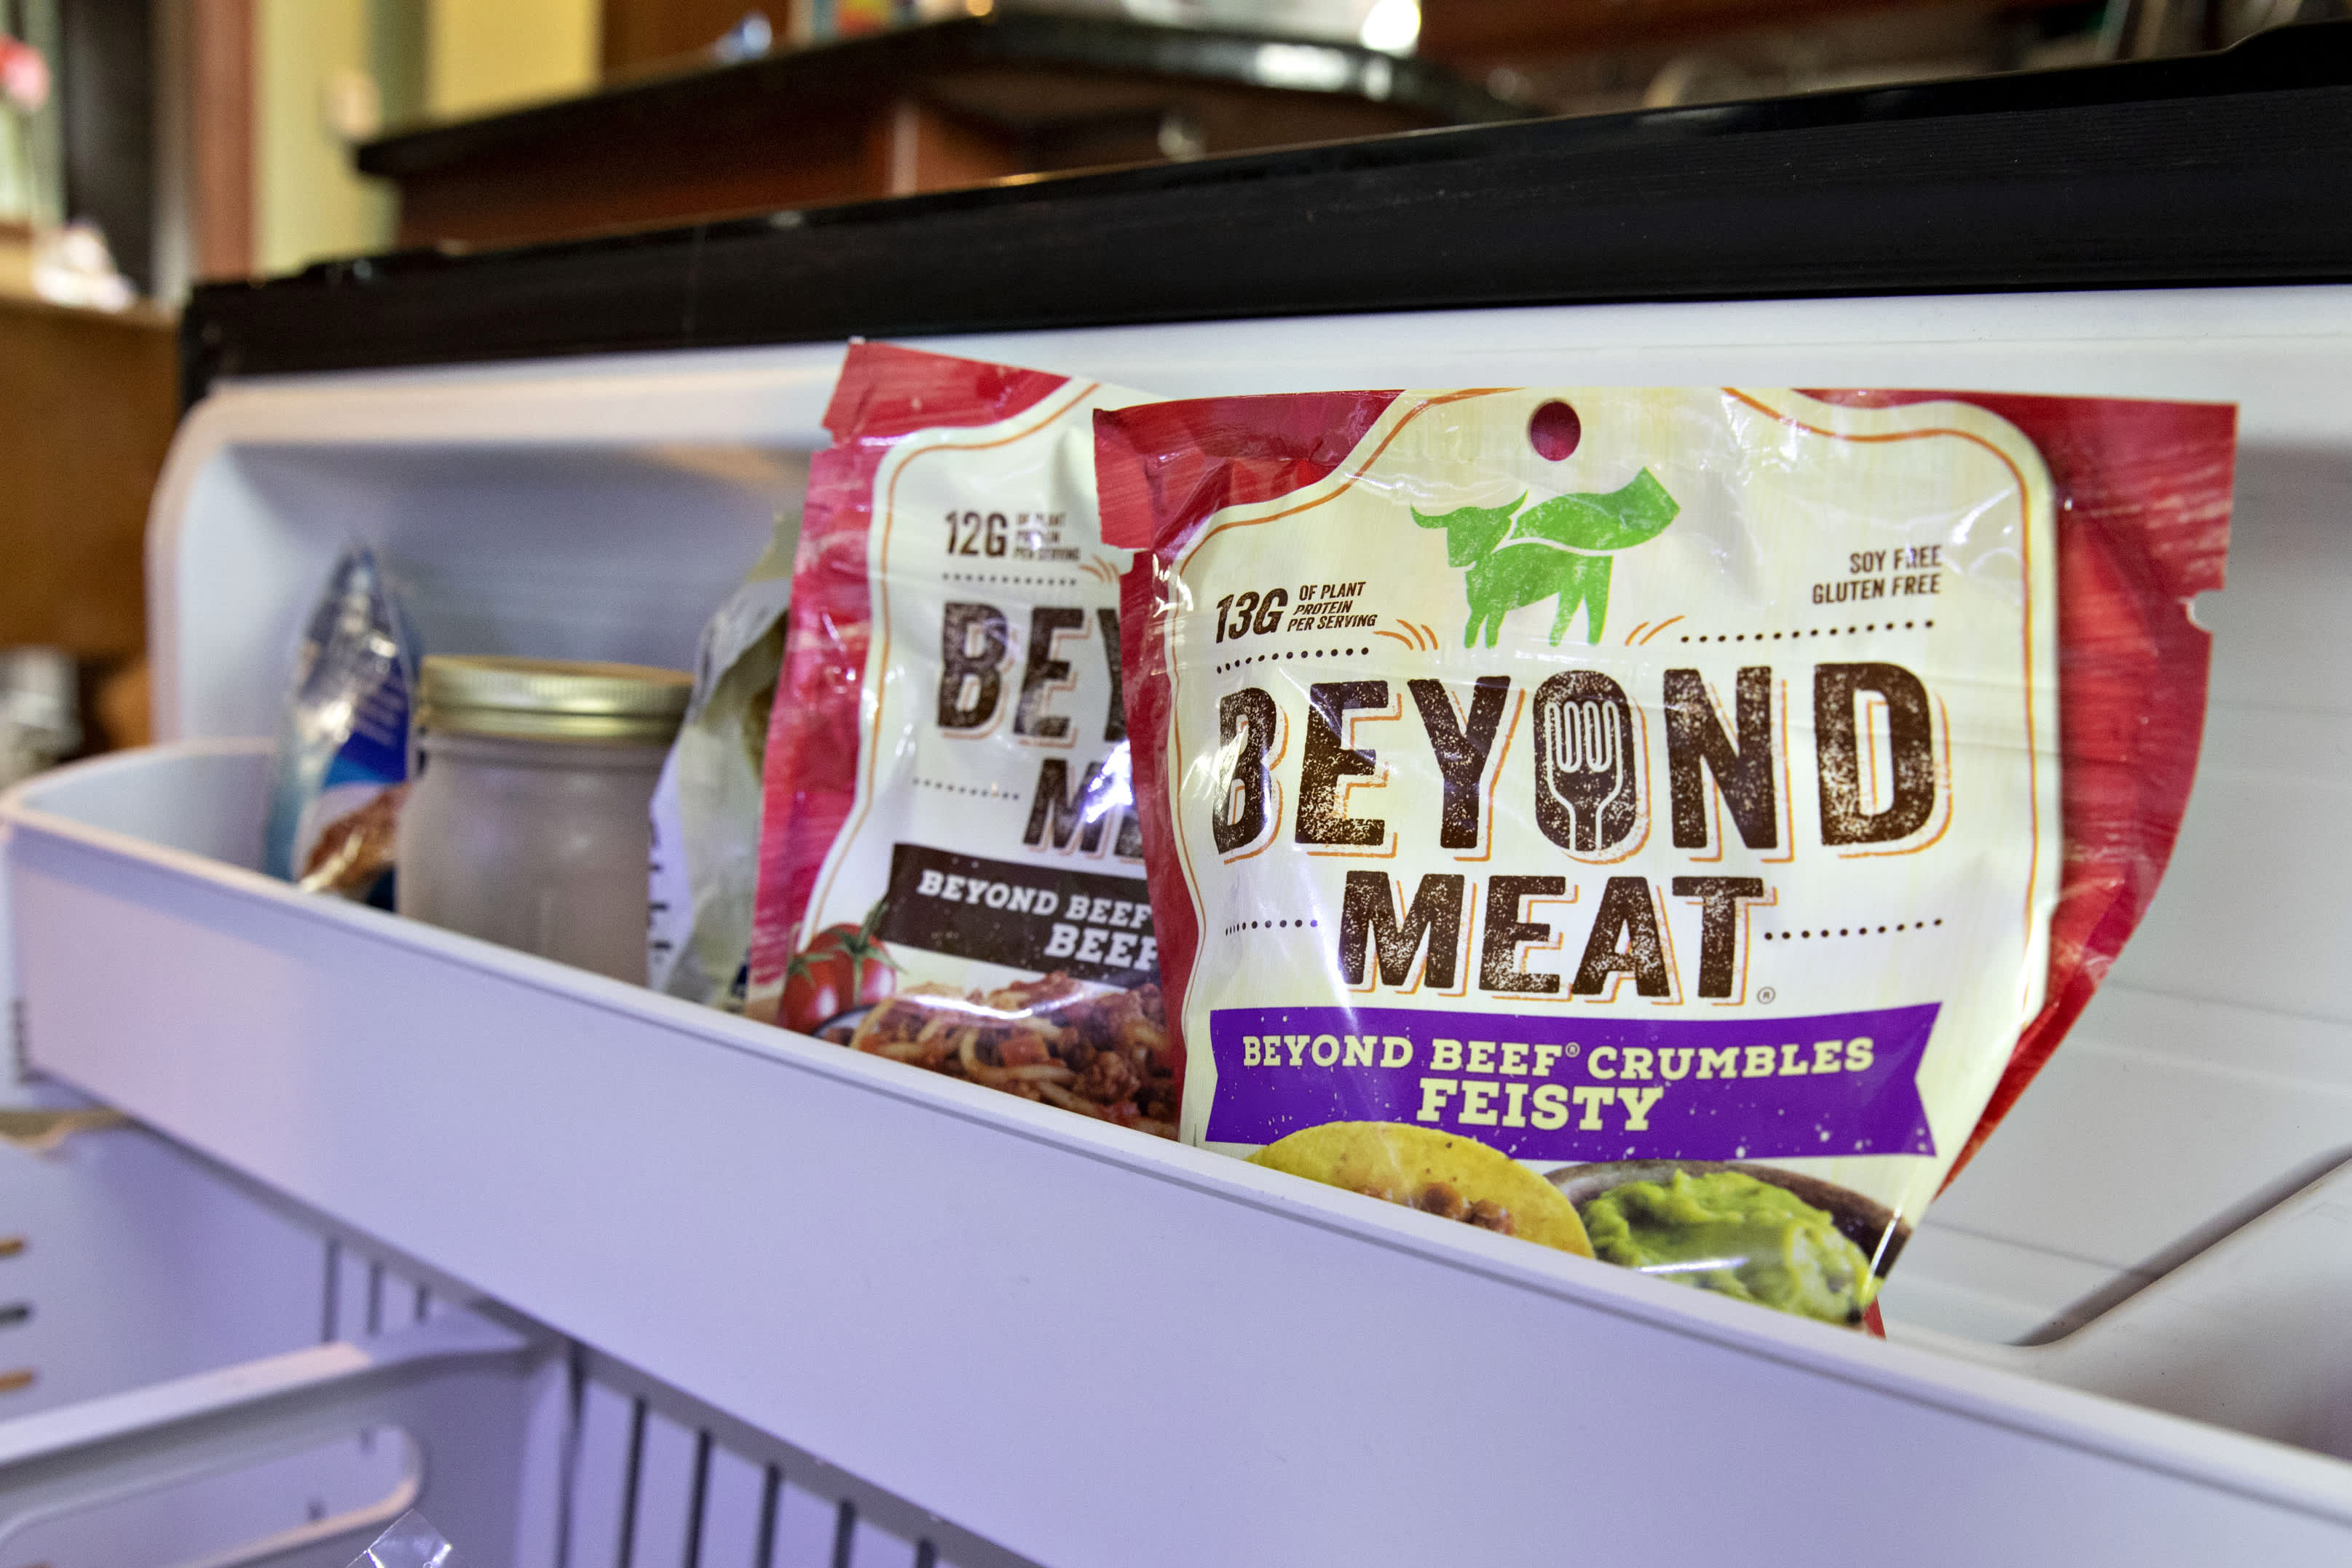 Short seller says Beyond Meat hype is 'beyond stupid,' places bet against the shares